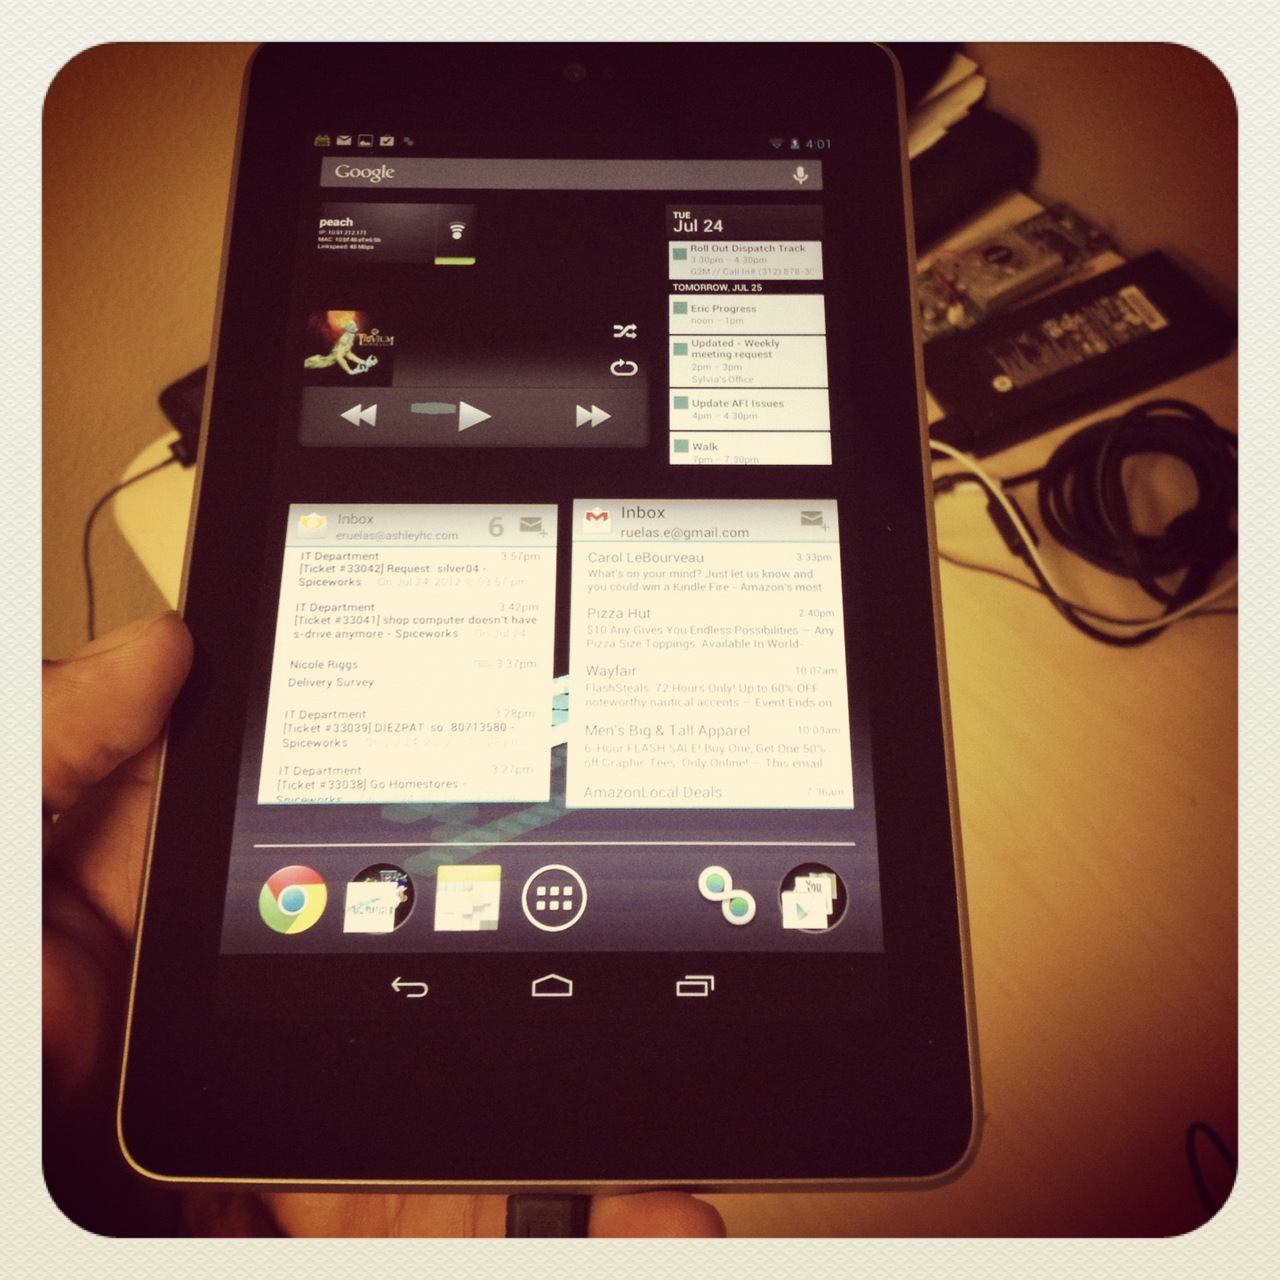 I got to get my hands on the Nexus 7 today…  my friend/co-worker Eric got it last week and it's possibly the best Android product I've ever picked up. The form factor and size is pretty dope.  Hopefully, Apple will come out with an iPad in the same size.